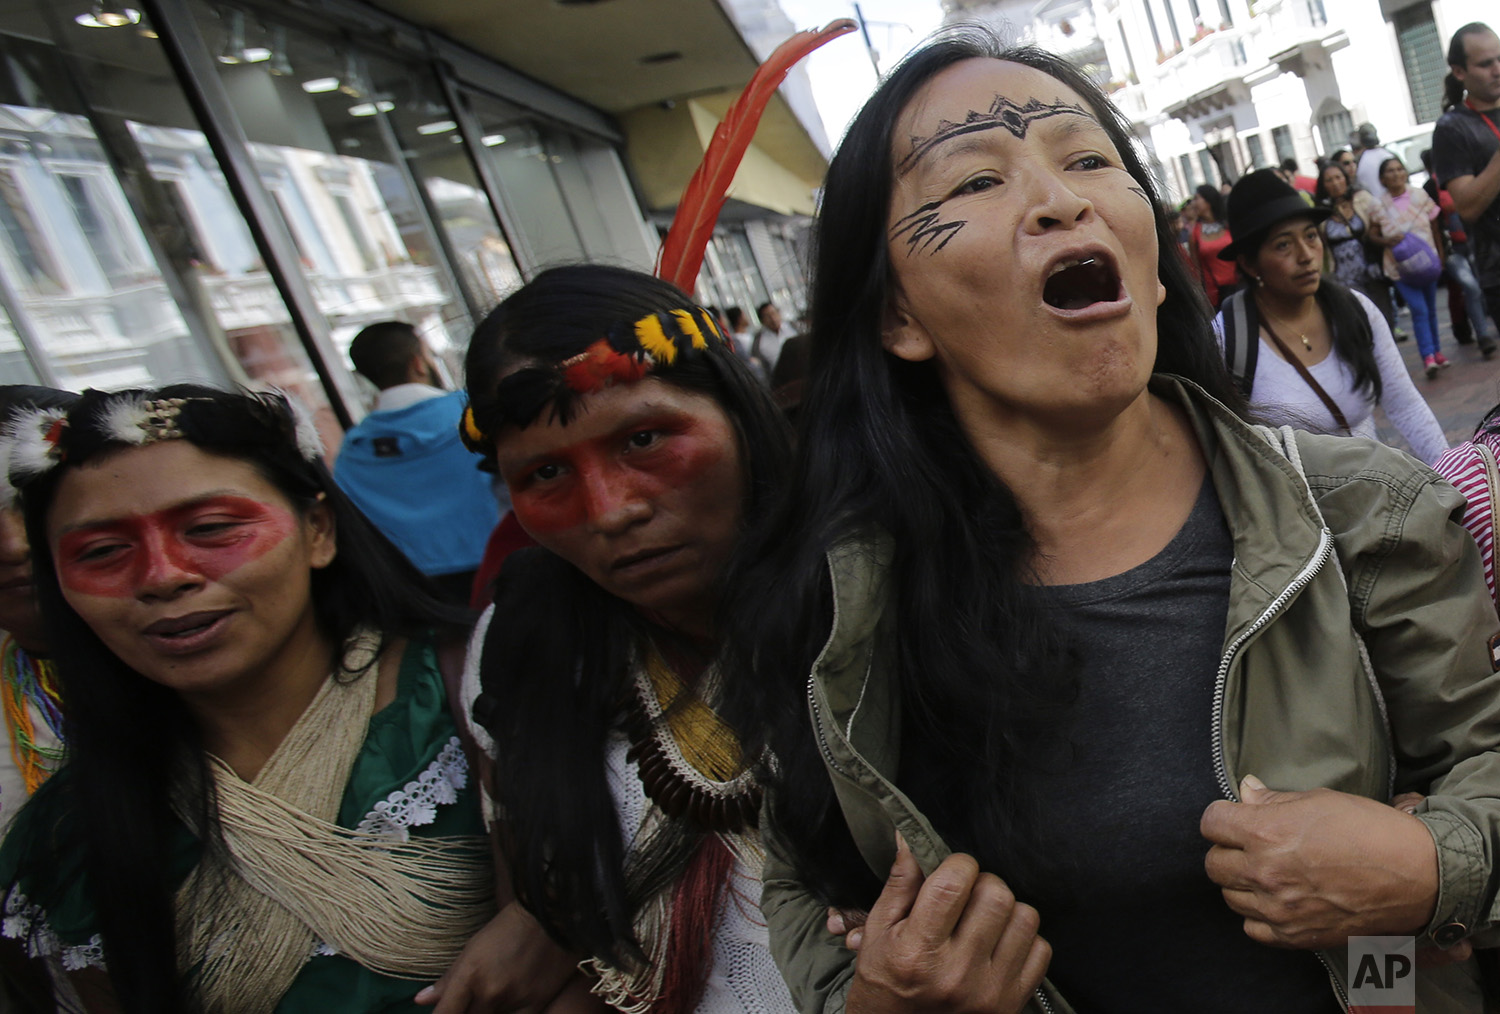 Indigenous leaders from across Ecuador march to the government palace to meet with President Lenin Moreno in Quito, Ecuador, Tuesday, July 4, 2017. (AP Photo/Dolores Ochoa)